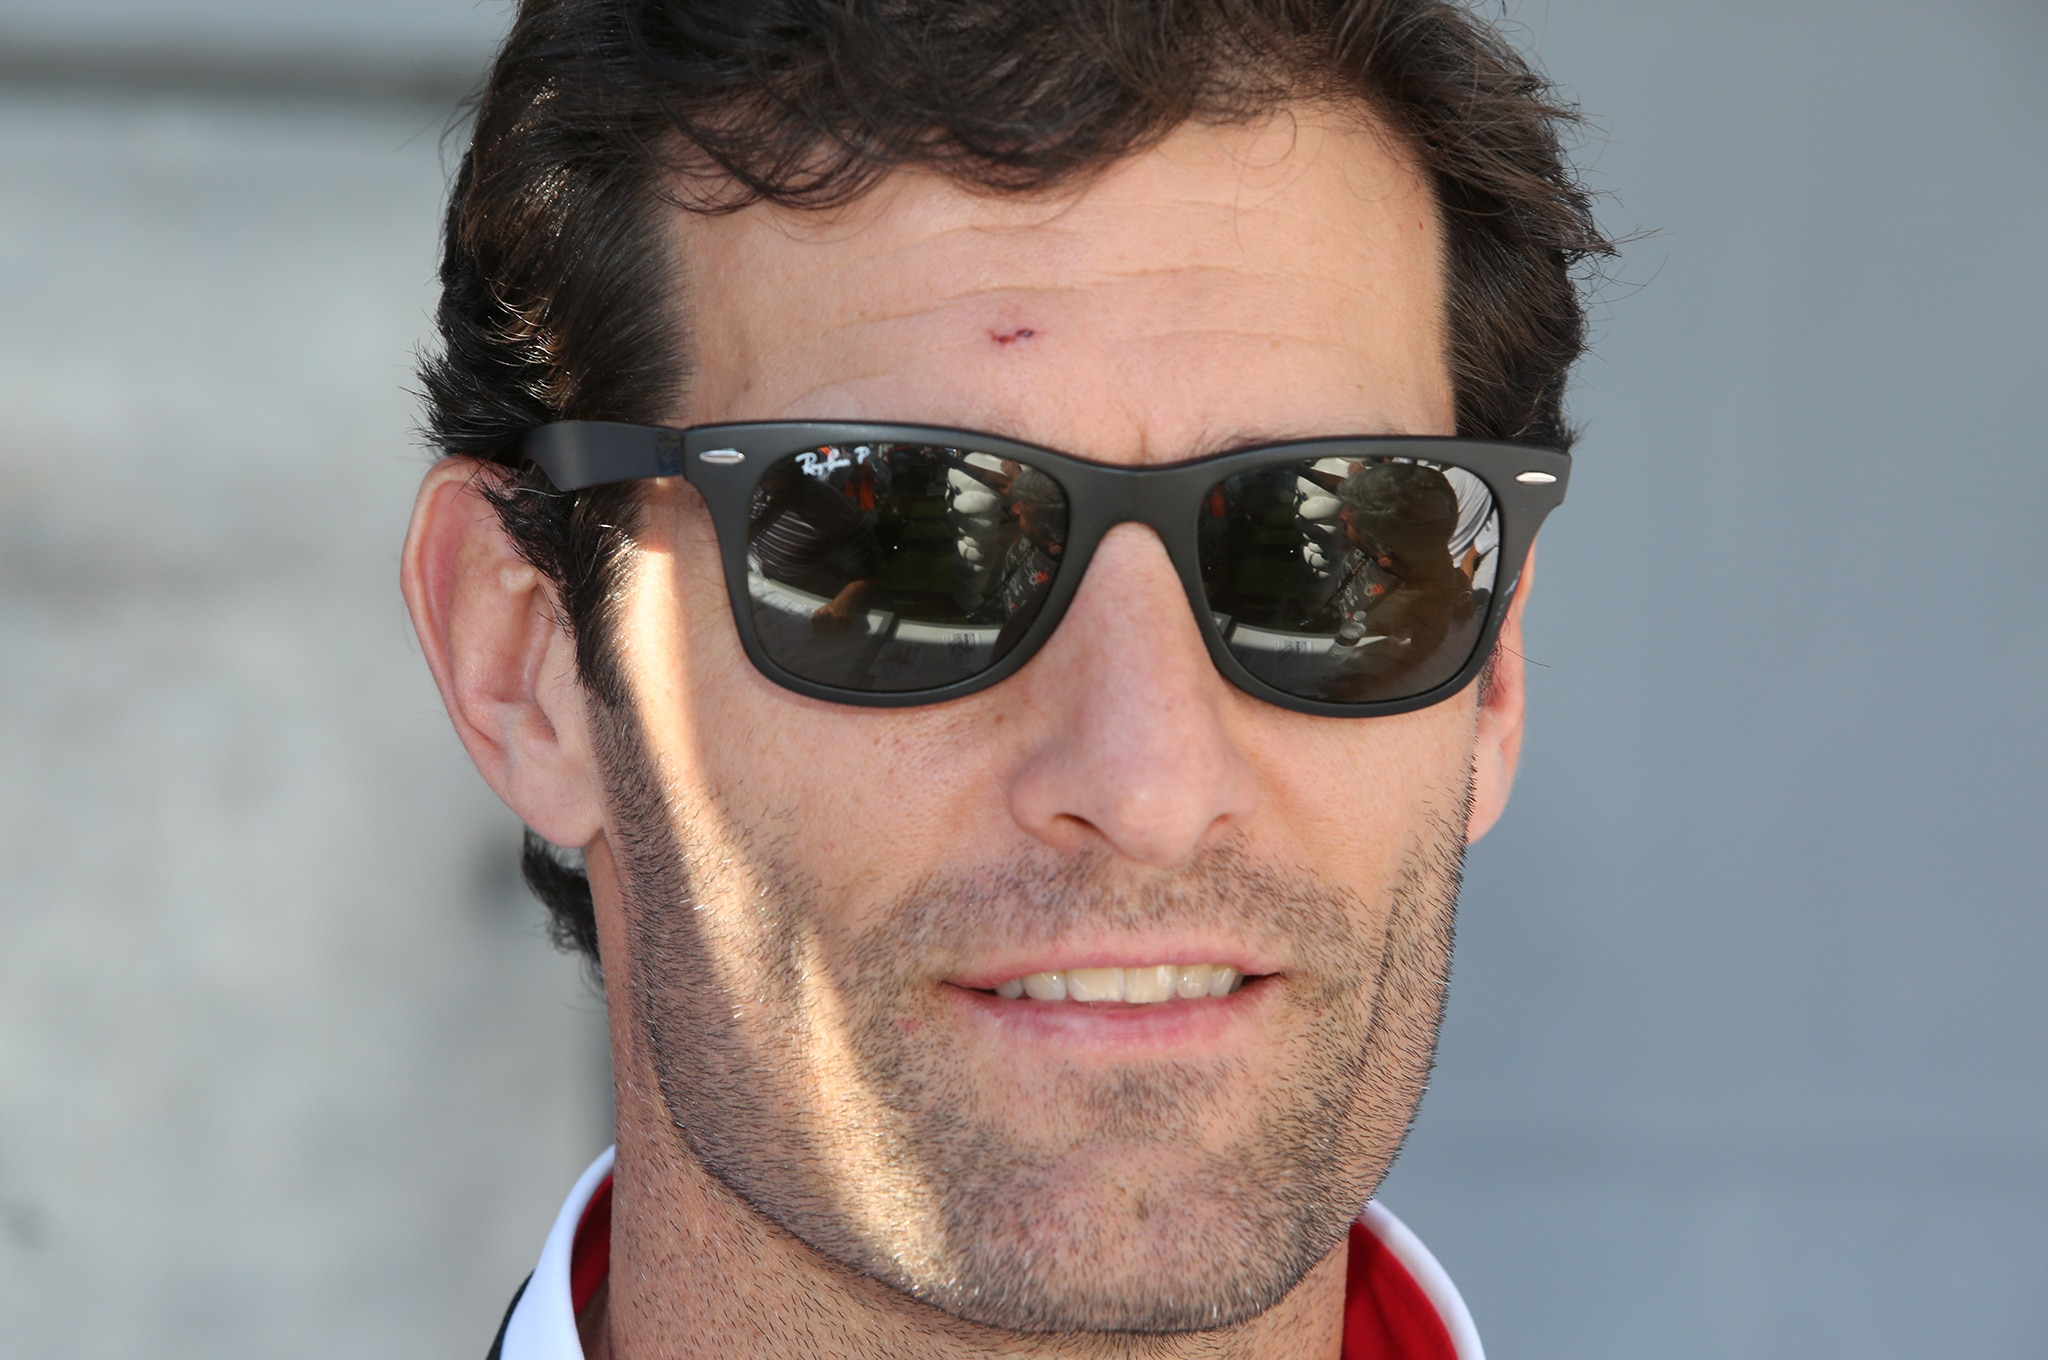 21. Among the guest drivers was Le Mans winner Mark Webber.